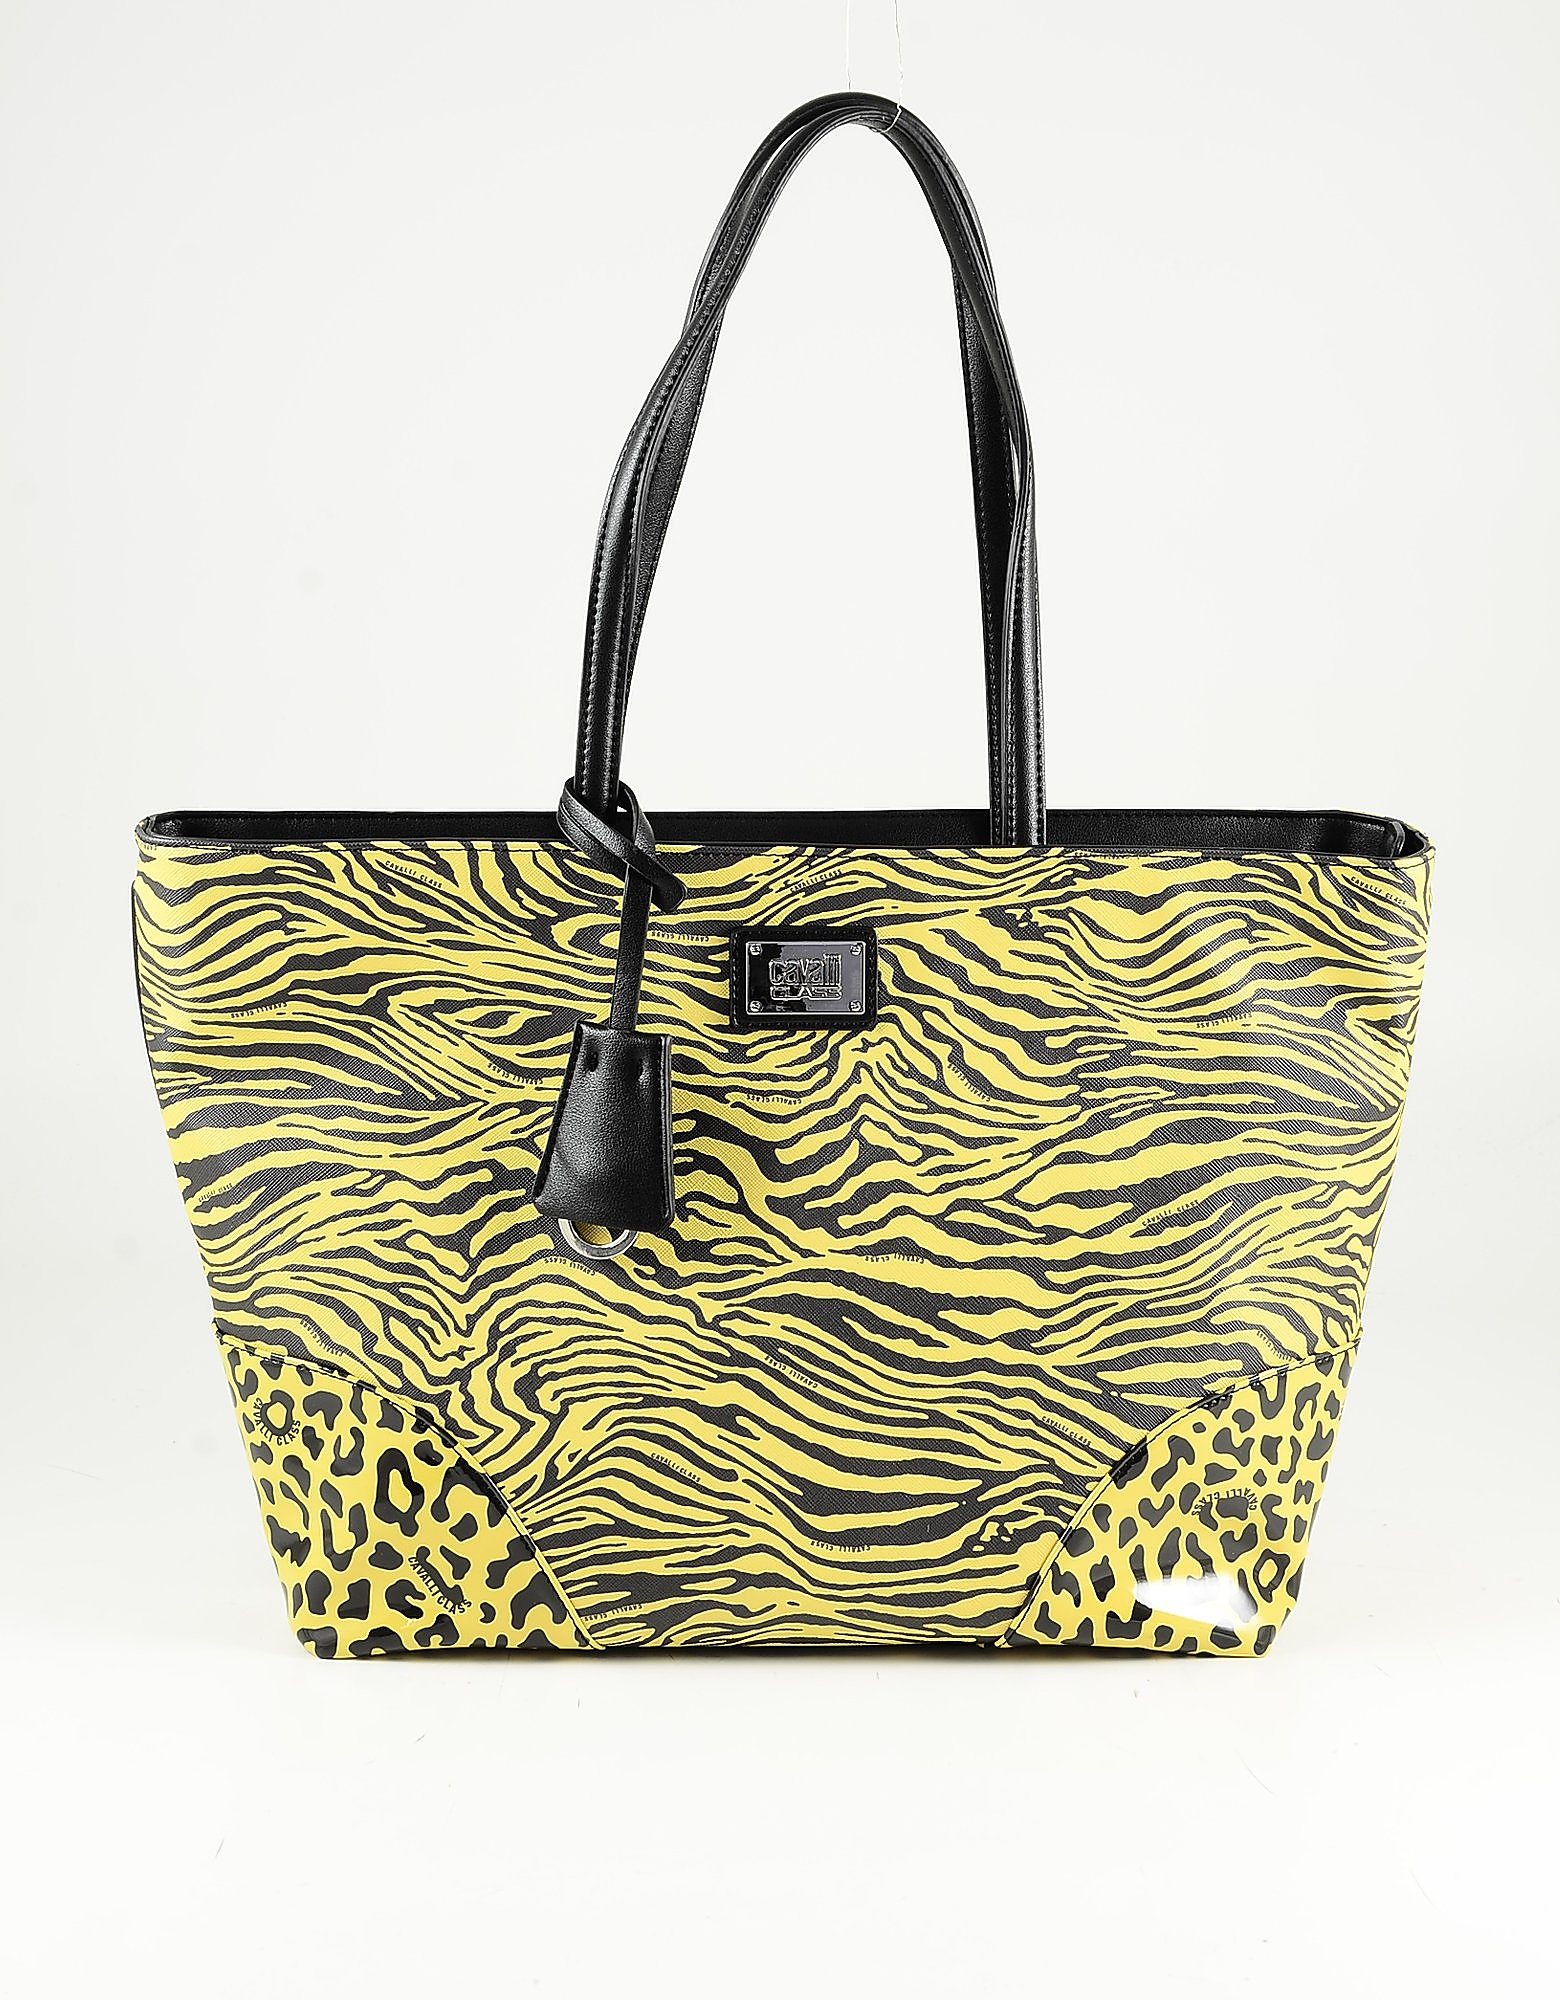 Class Roberto Cavalli Yellow & Black Animal Print Tote Bag